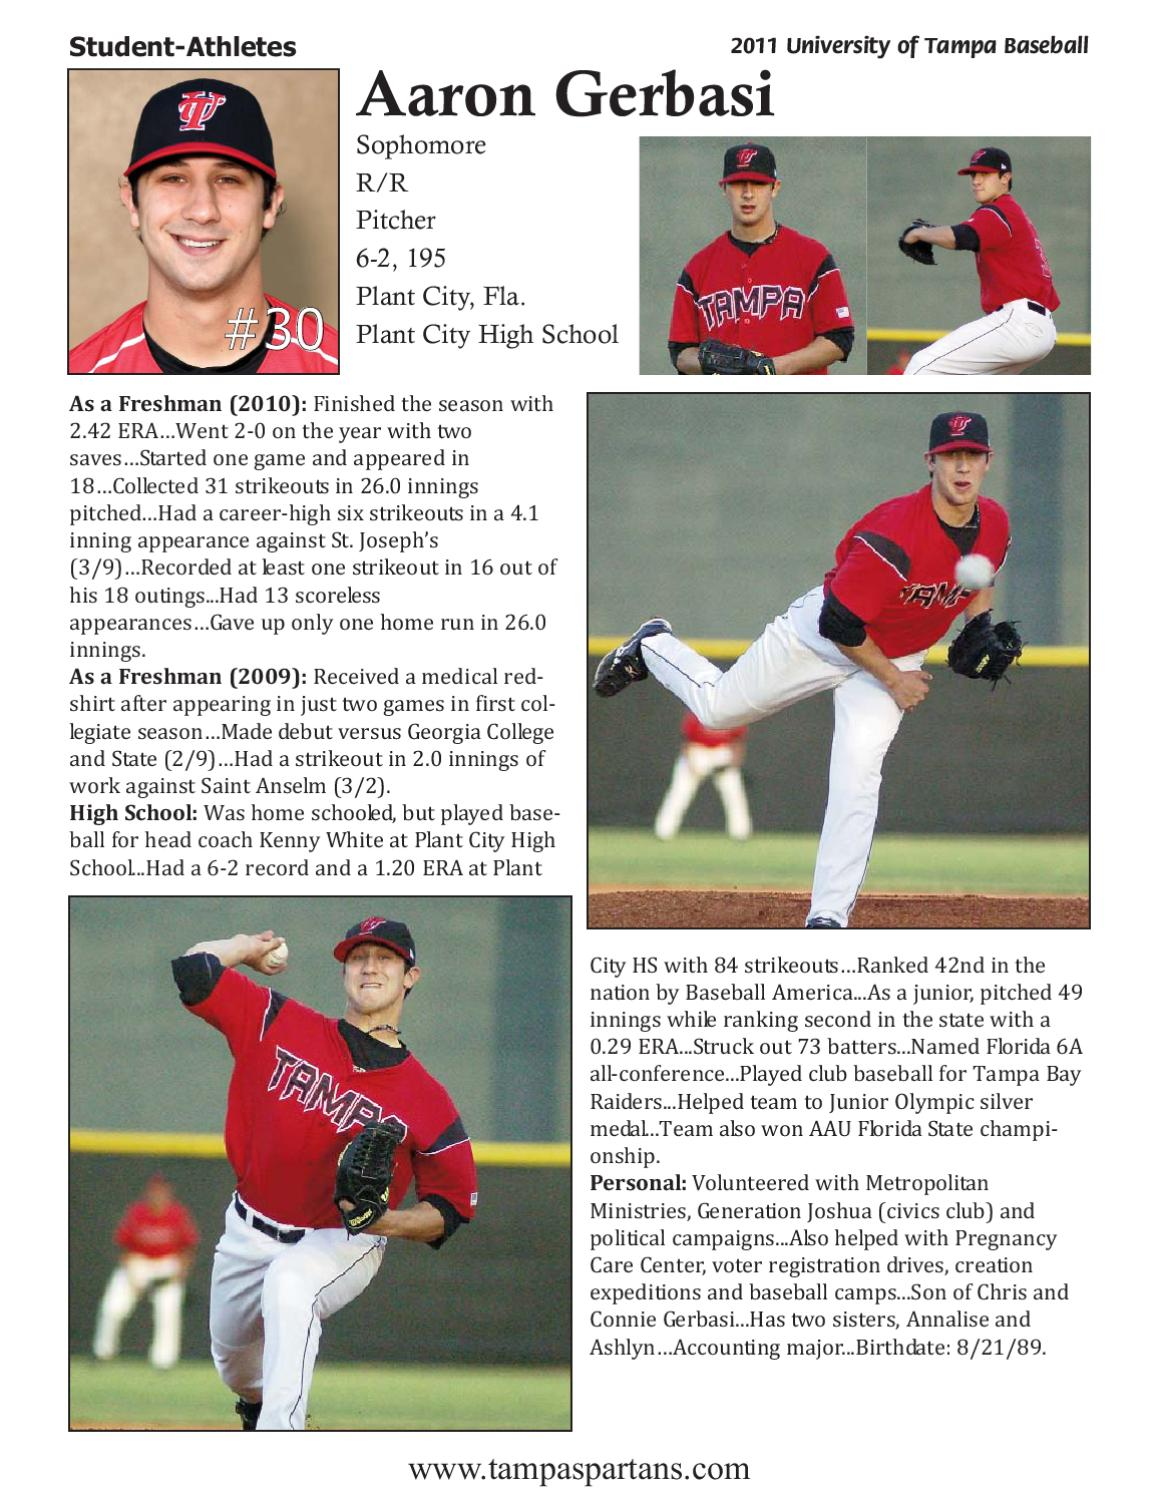 2011 University Of Tampa Baseball Media Guide By Athletics